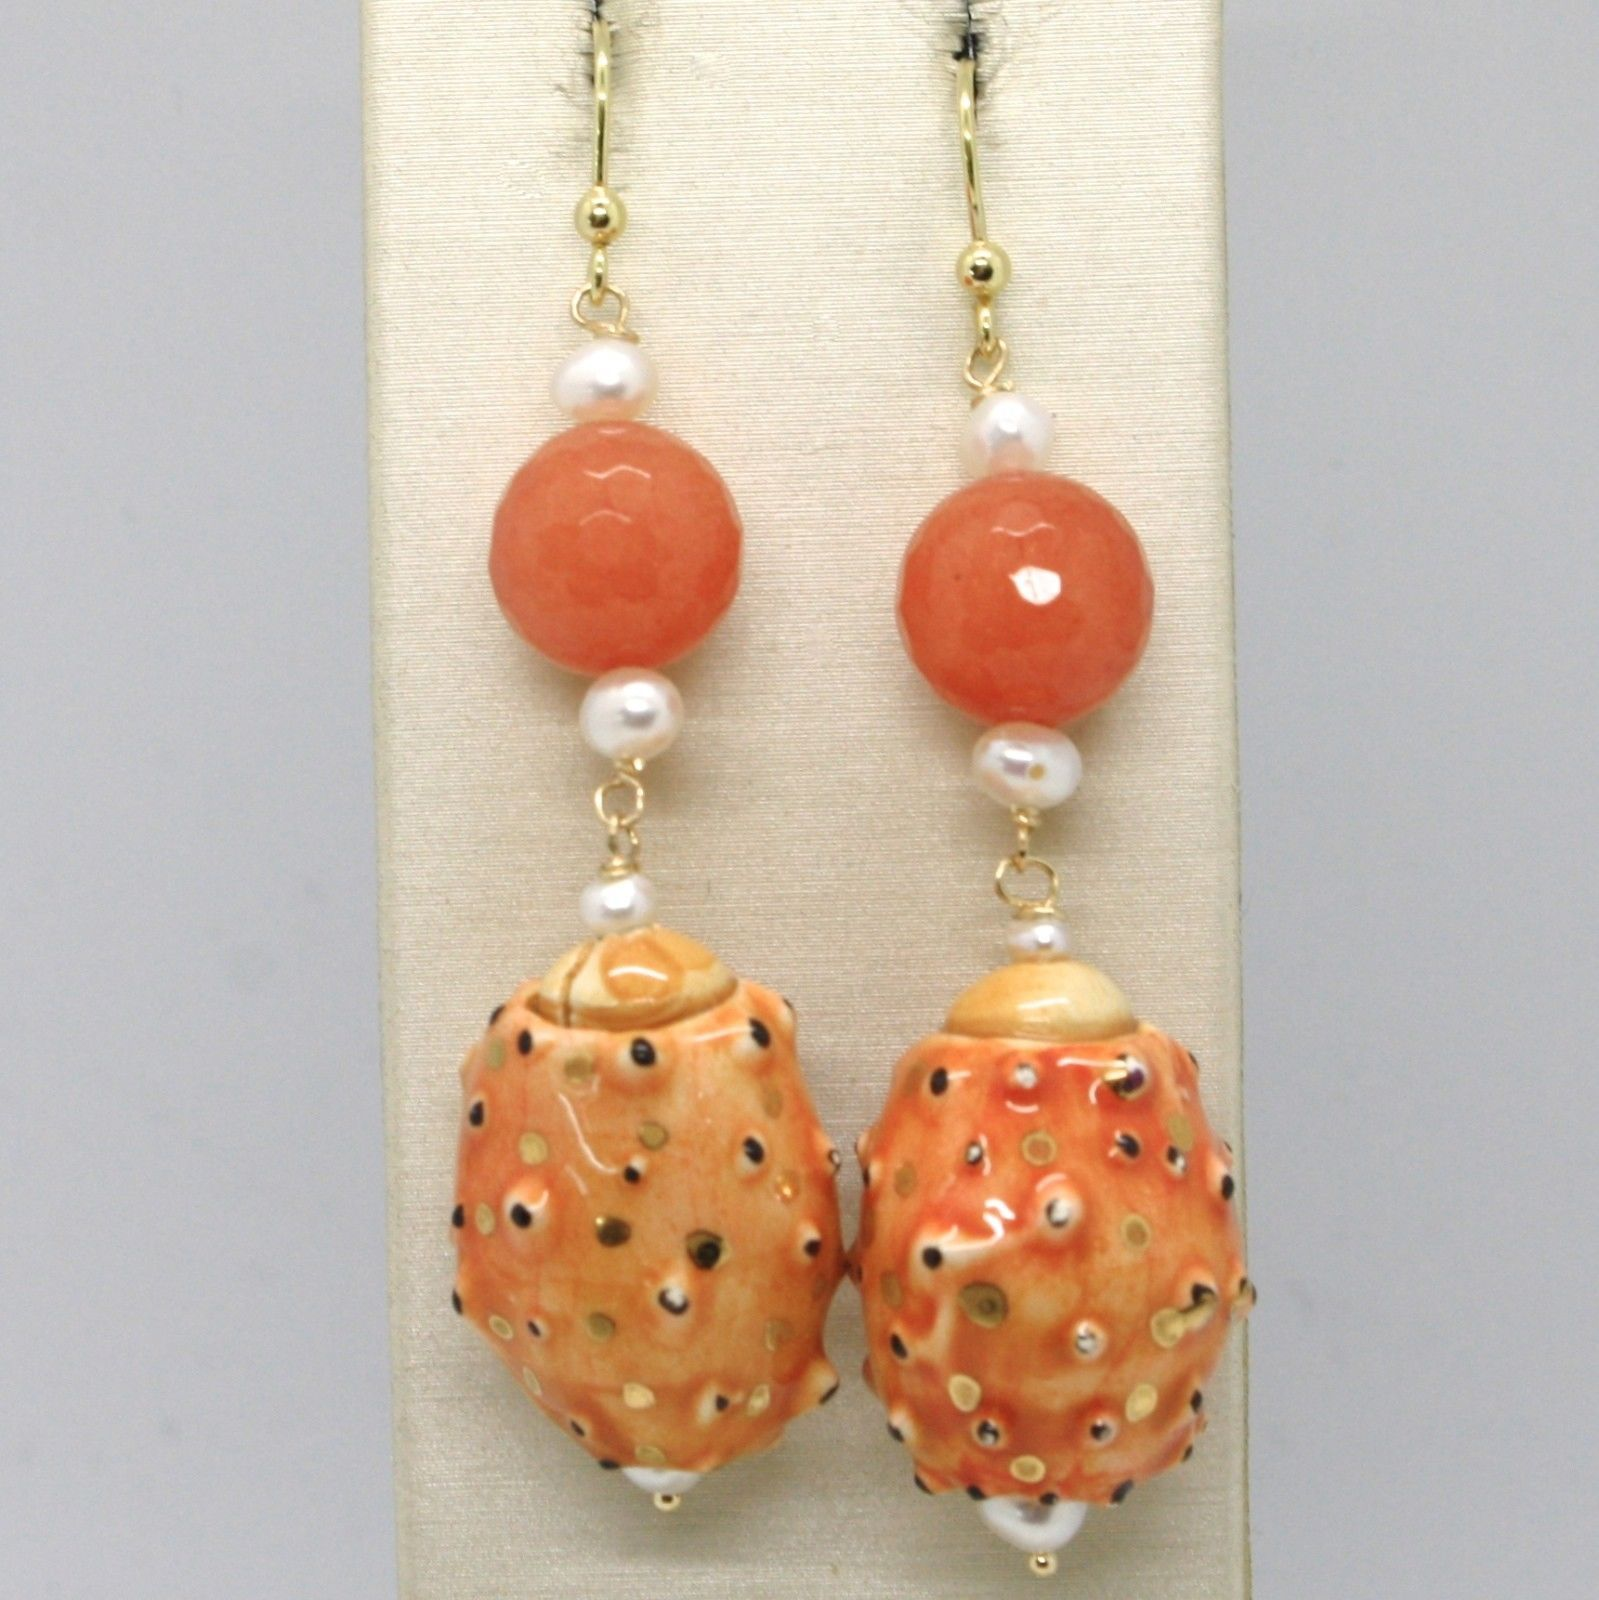 18K YELLOW GOLD EARRINGS ORANGE QUARTZ CERAMIC PRICKLY PEAR HAND PAINTED ITALY